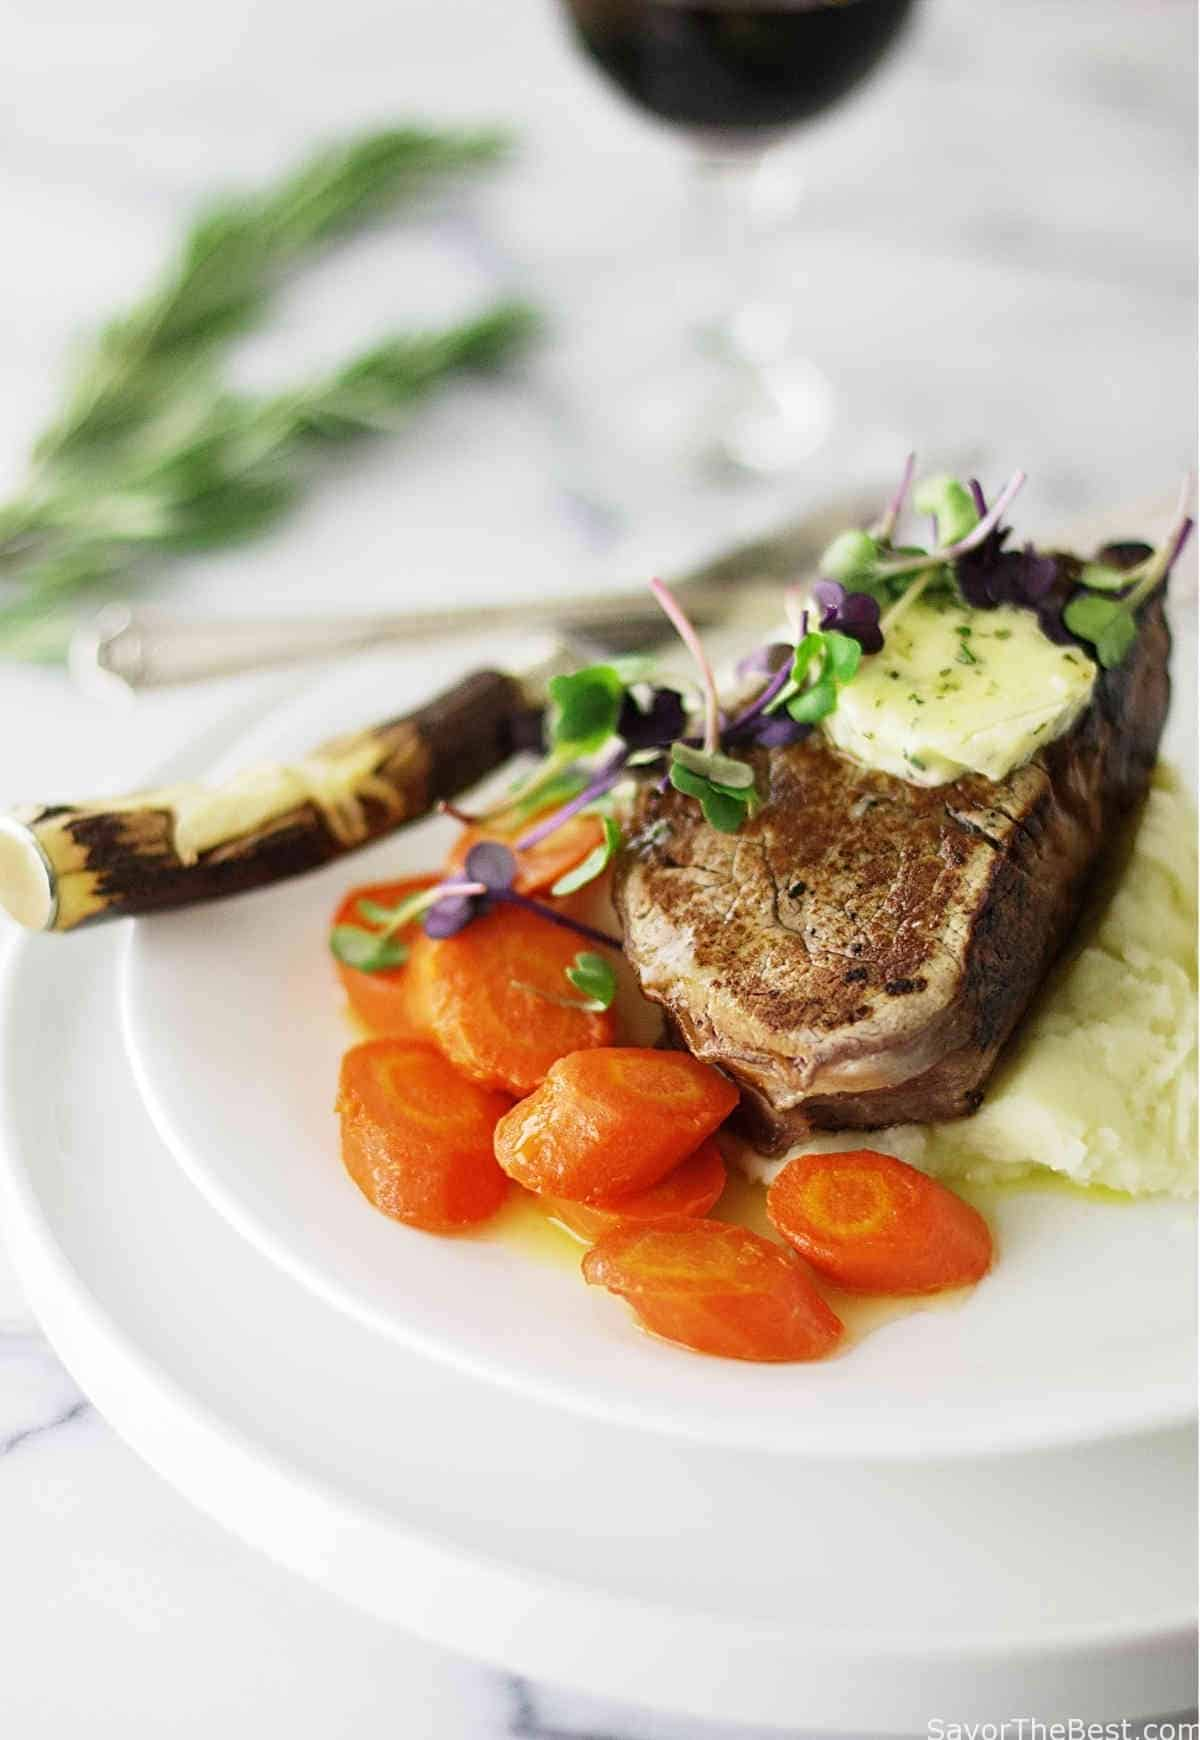 Beef Tenderloin Steaks with Garlic-Herb Compound Butter